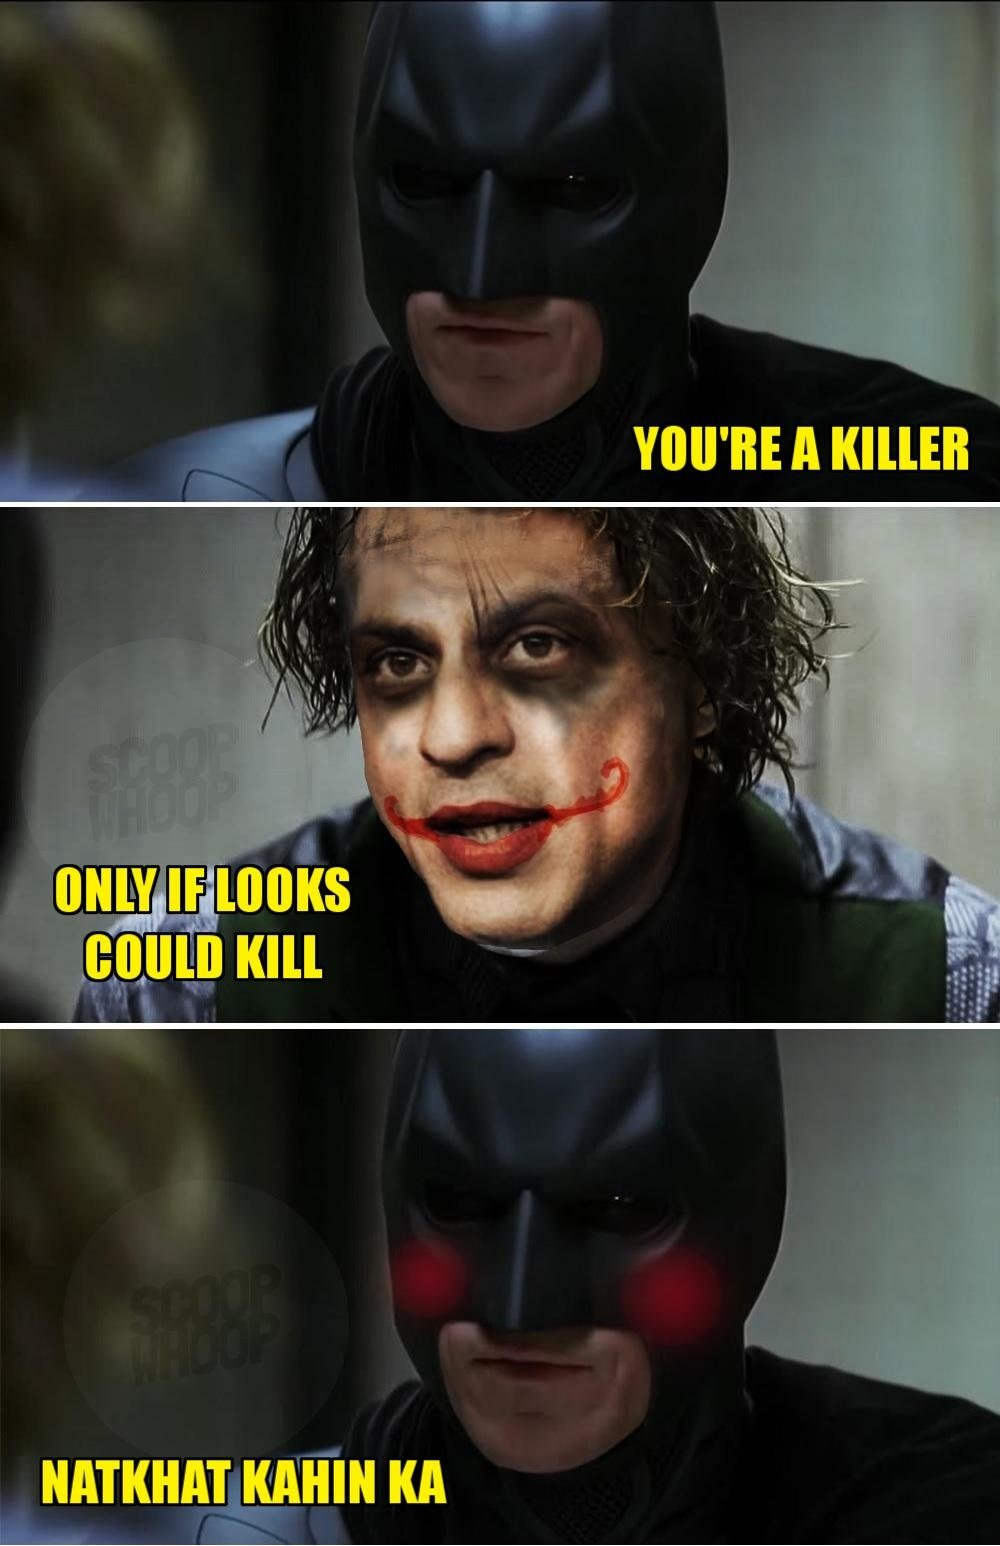 And His Version Of Joker Wouldve Been No Different